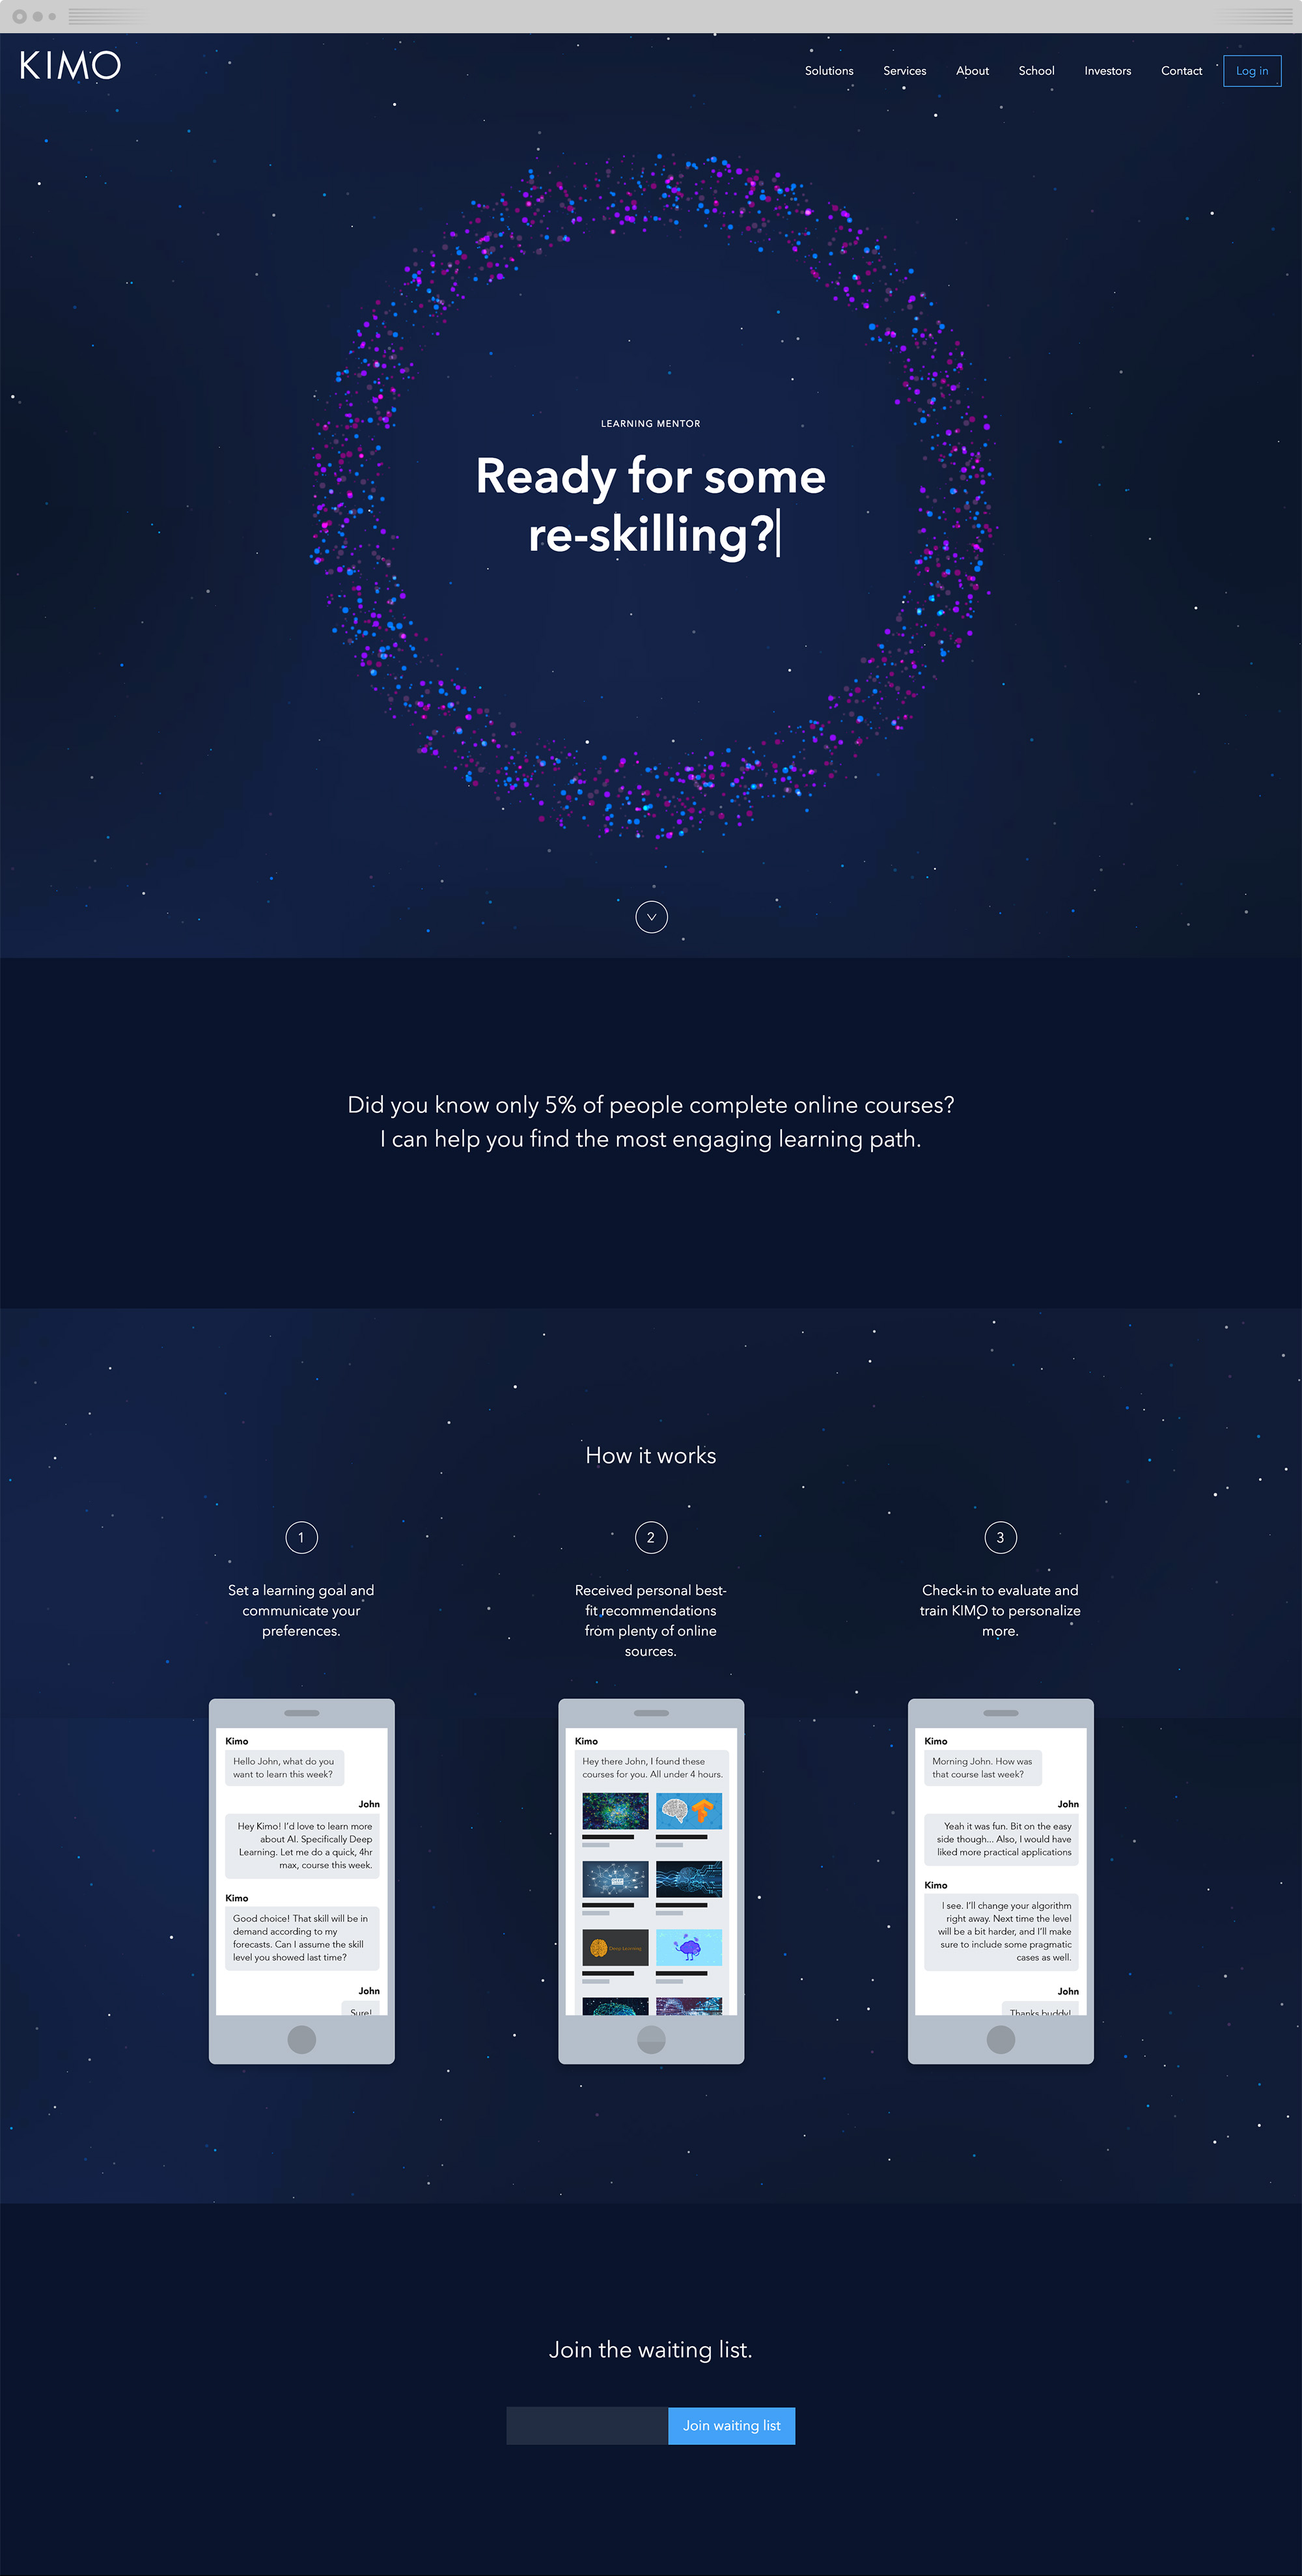 The landing page for Kimo Learning Mentor